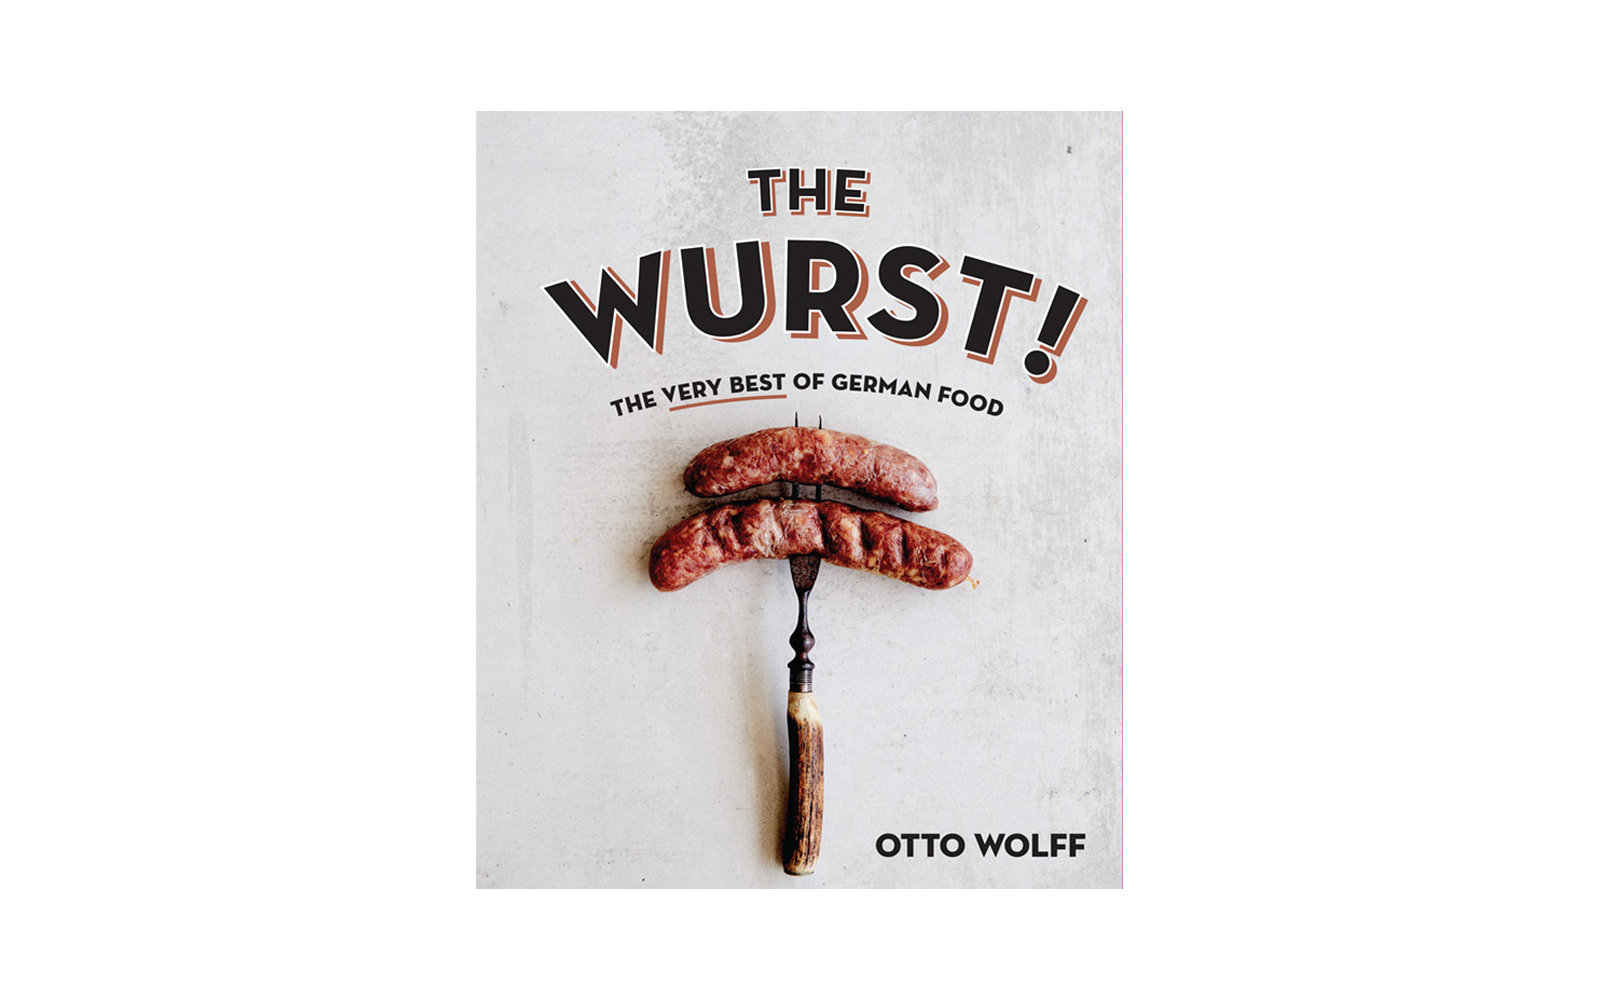 The Wurst by Otto Wolff